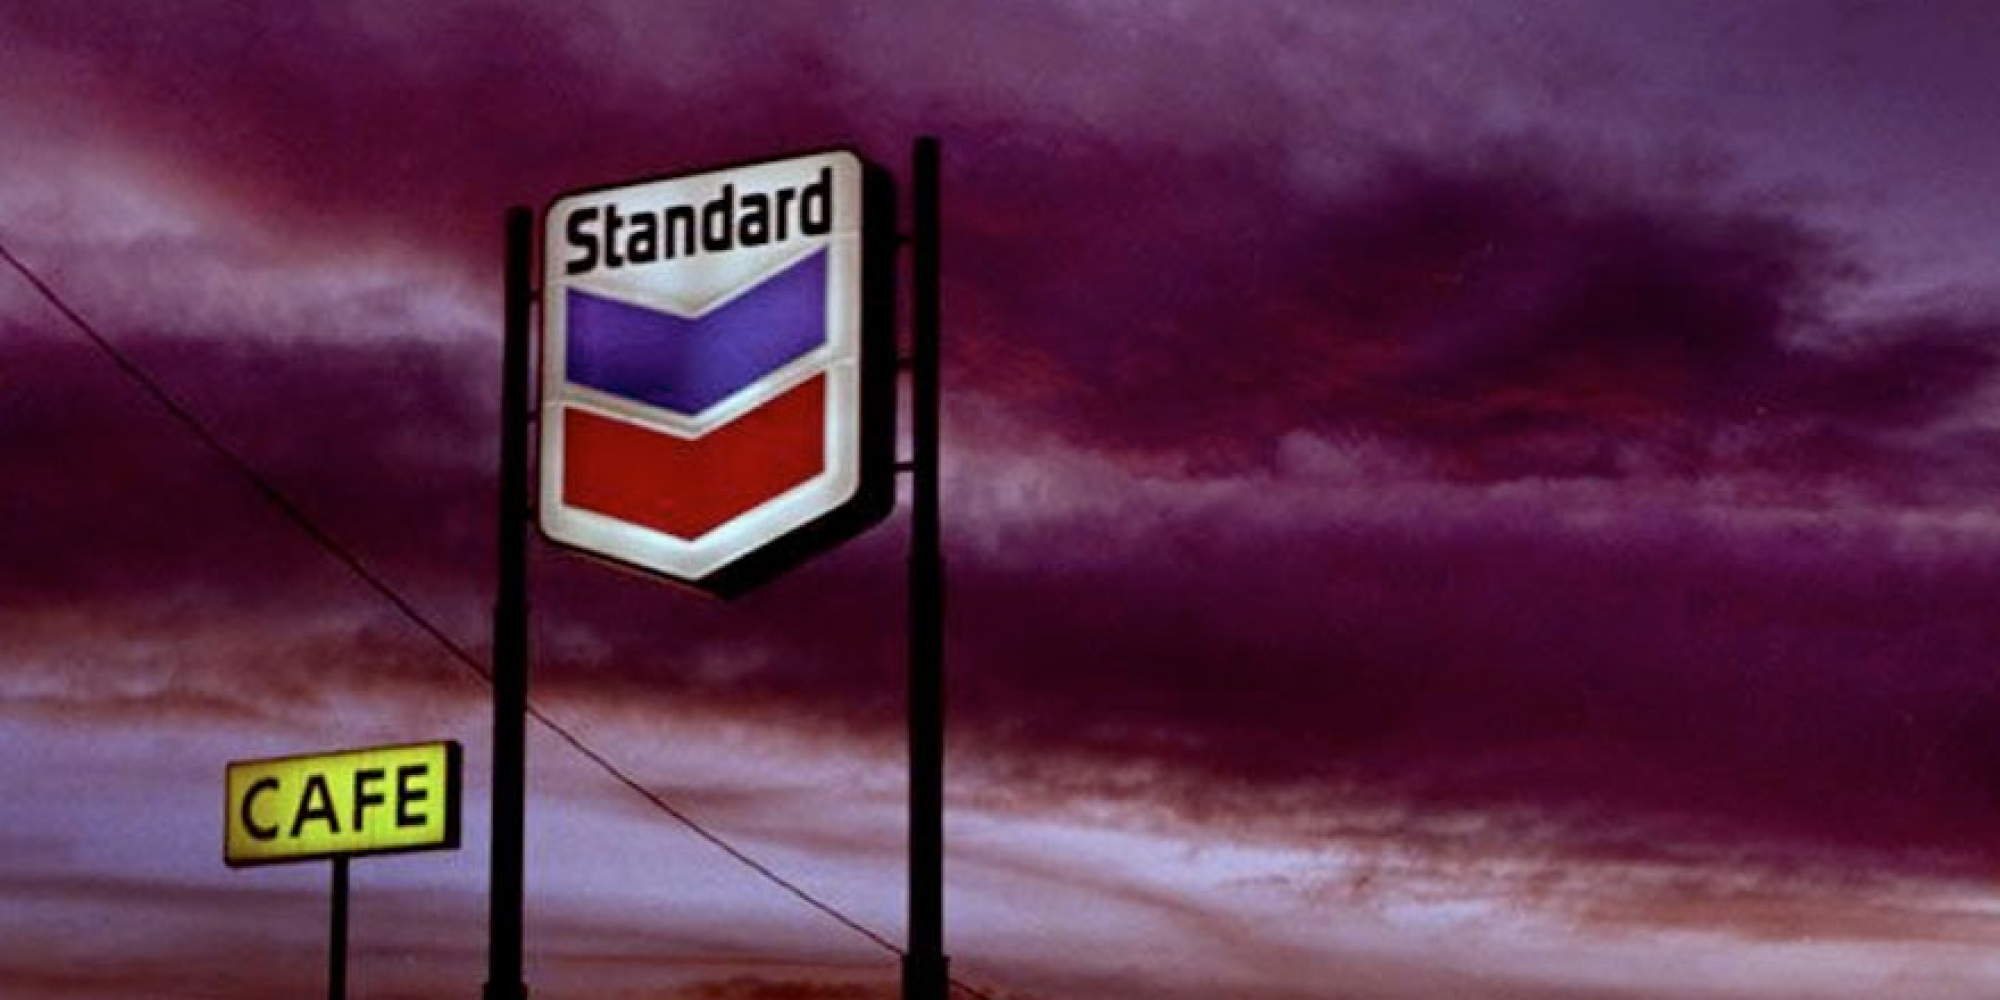 highway gas station sign